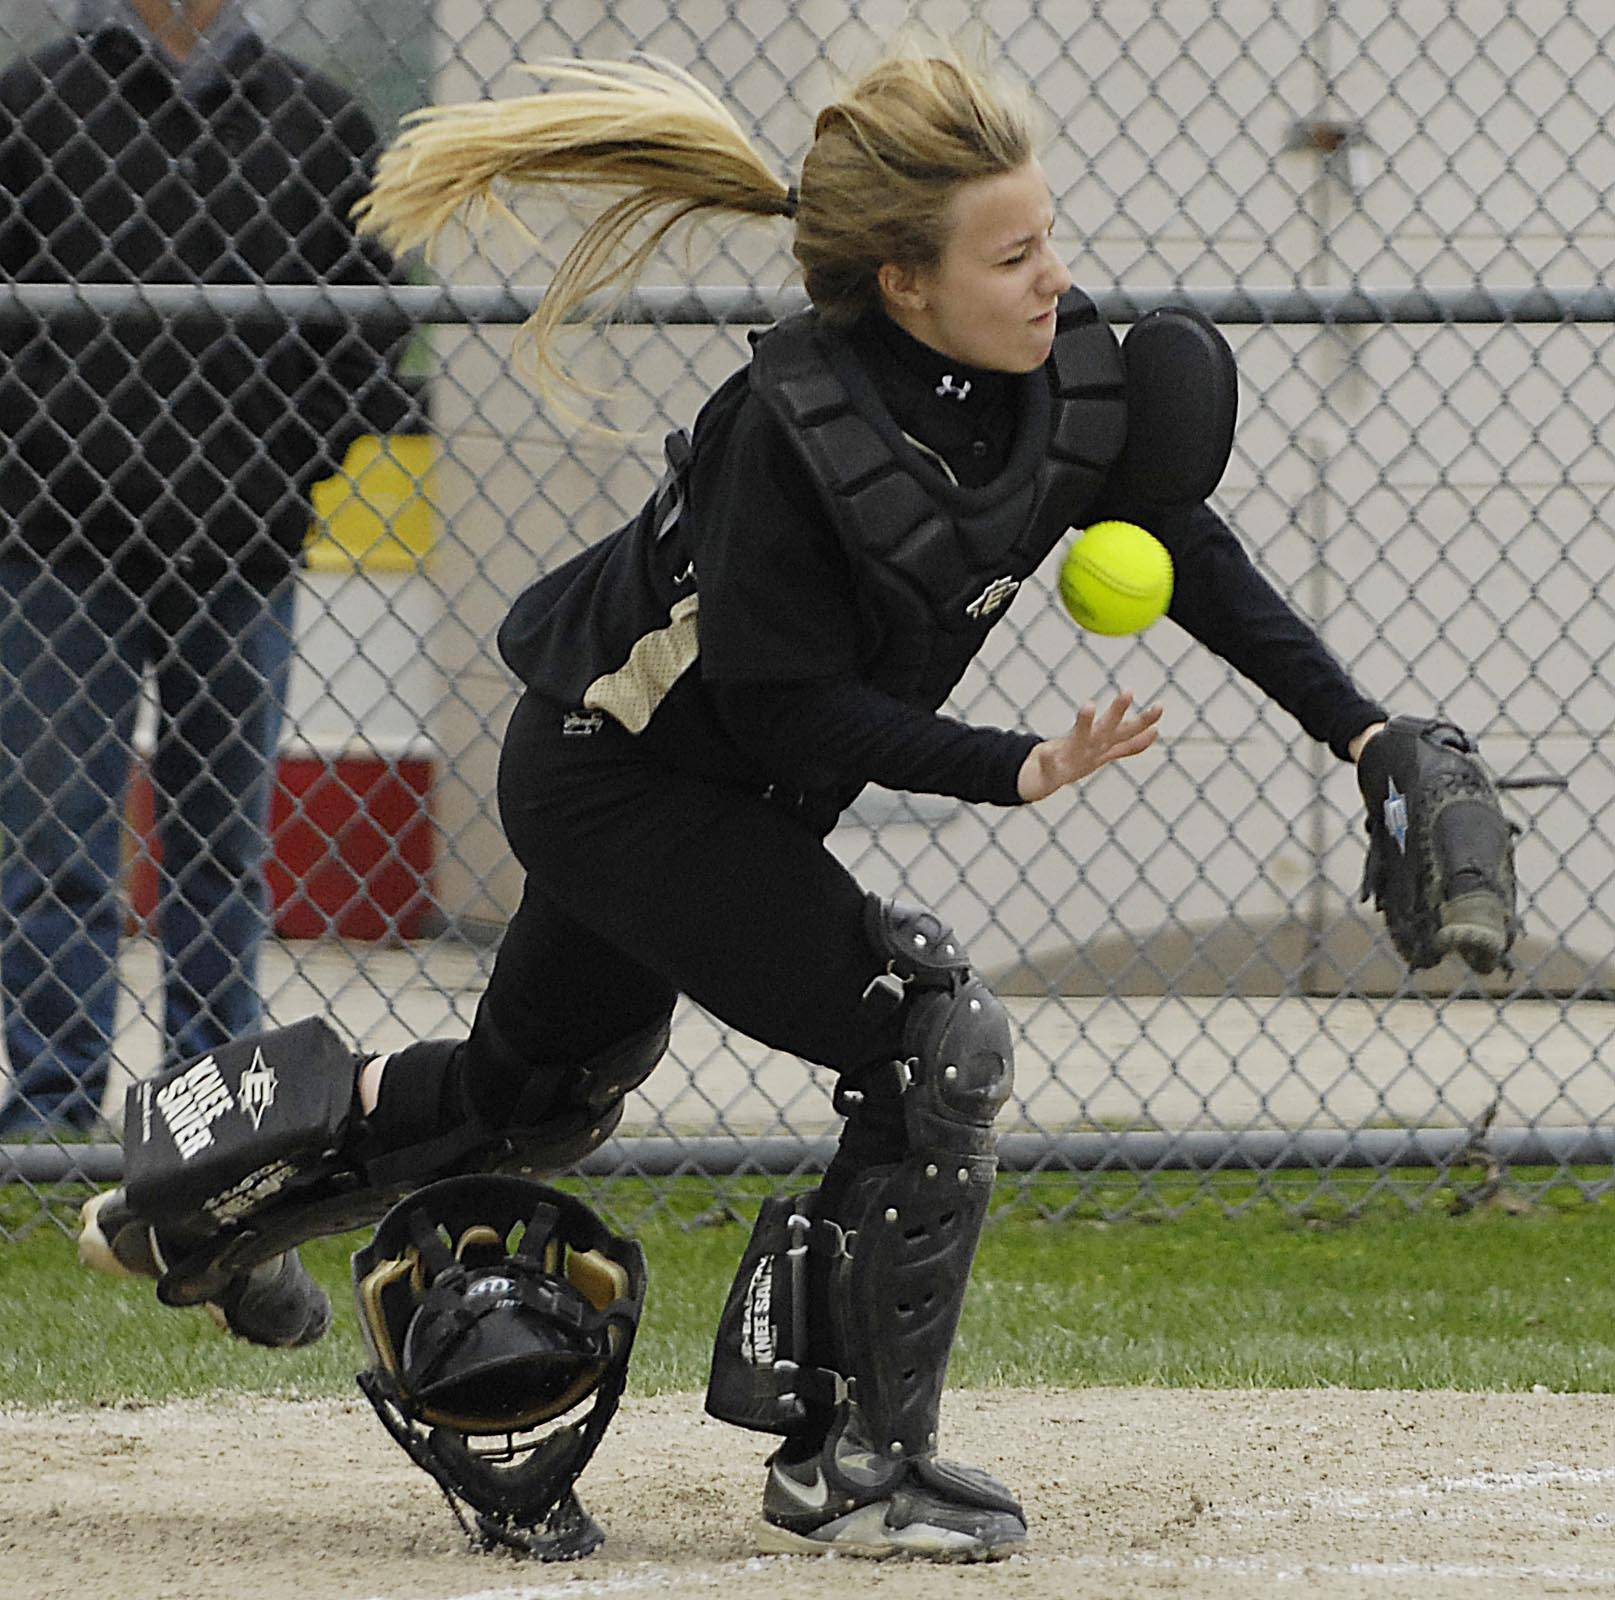 Streamwood catcher Natalie Filippo trips over her mask and misses a foul ball off the bat of Batavia's Rachael Lovestrand Monday in Batavia.